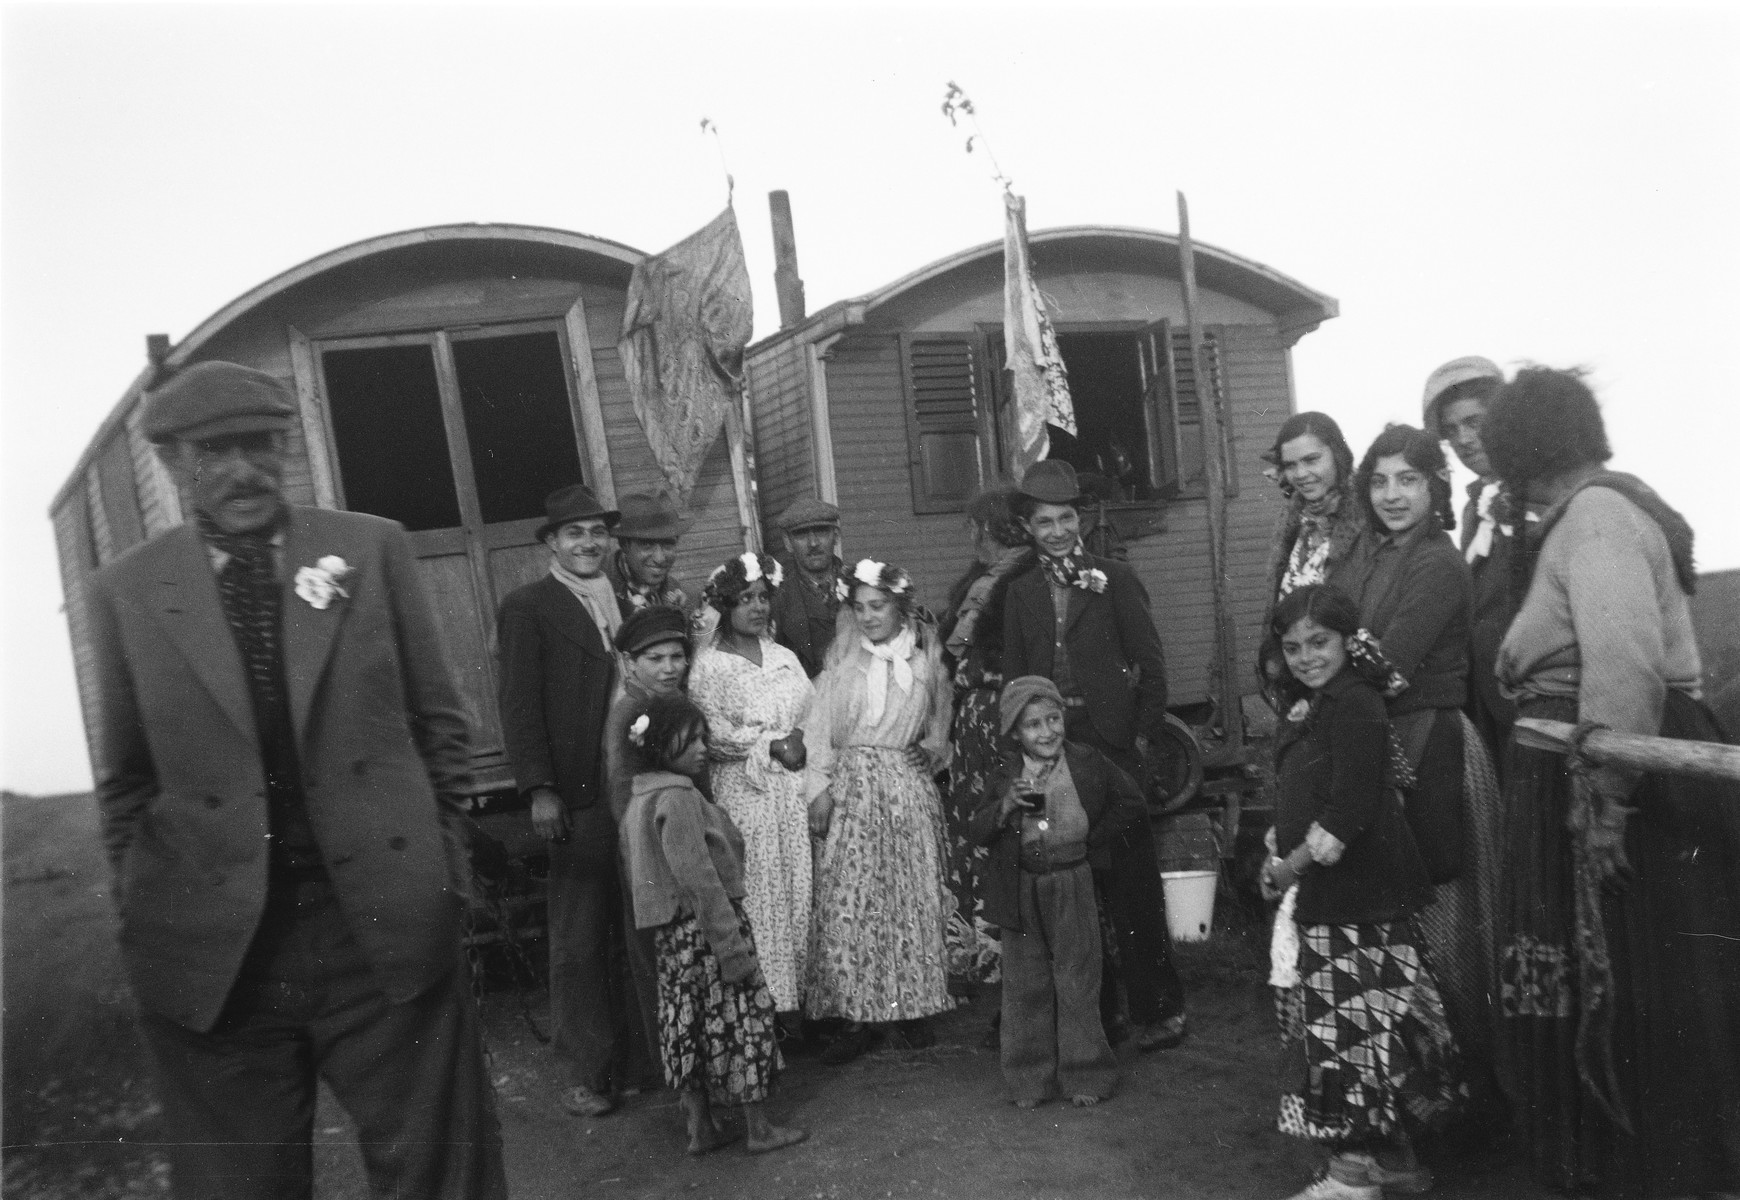 A Romani wedding party poses in front of two caravans.